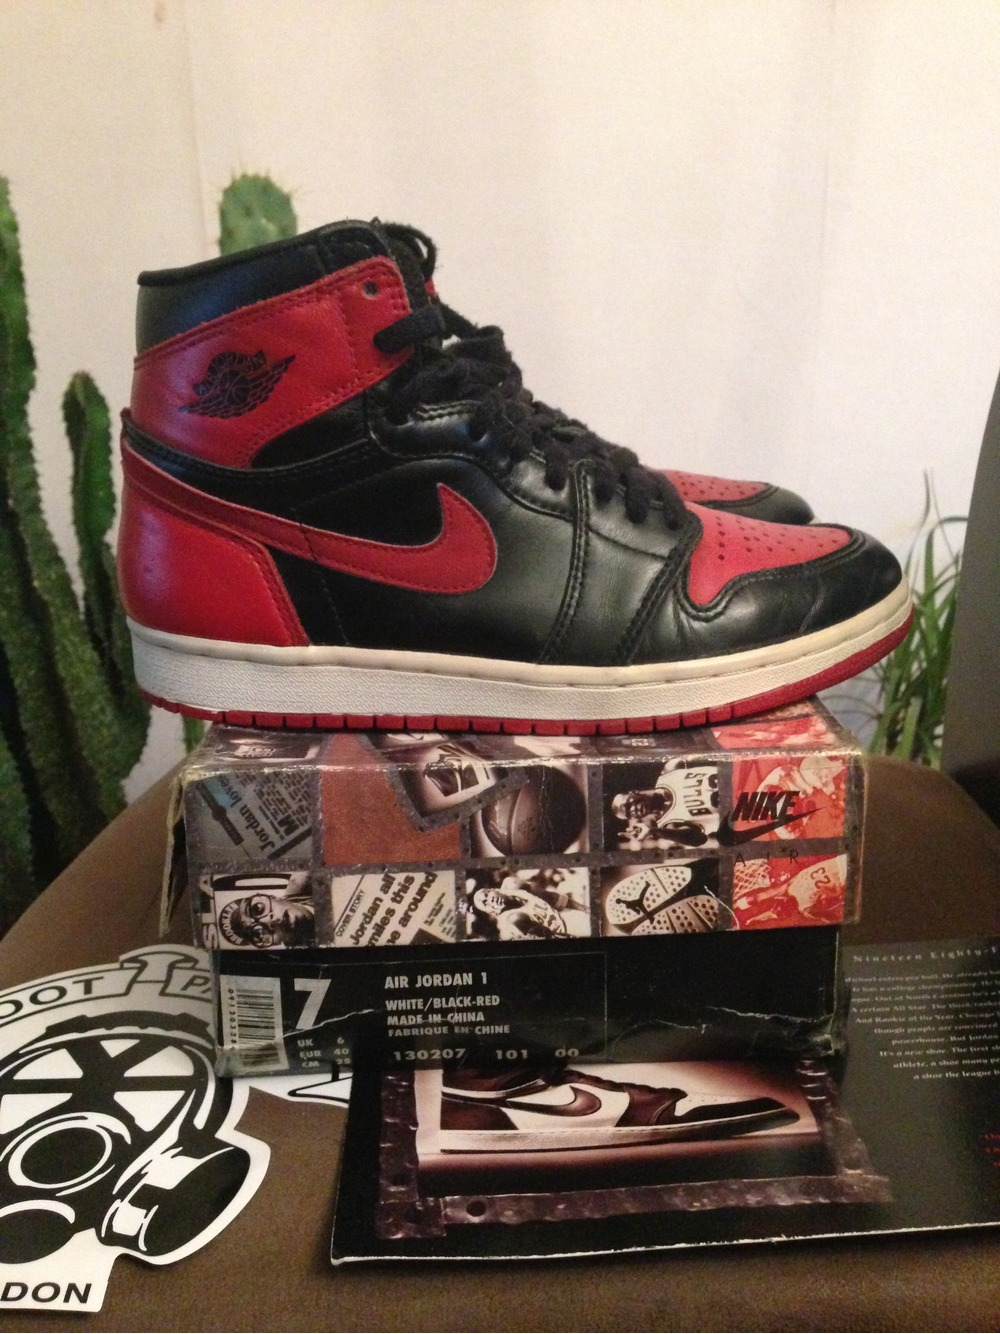 Jordan 1 Bred 1994 7US - photo 1/5